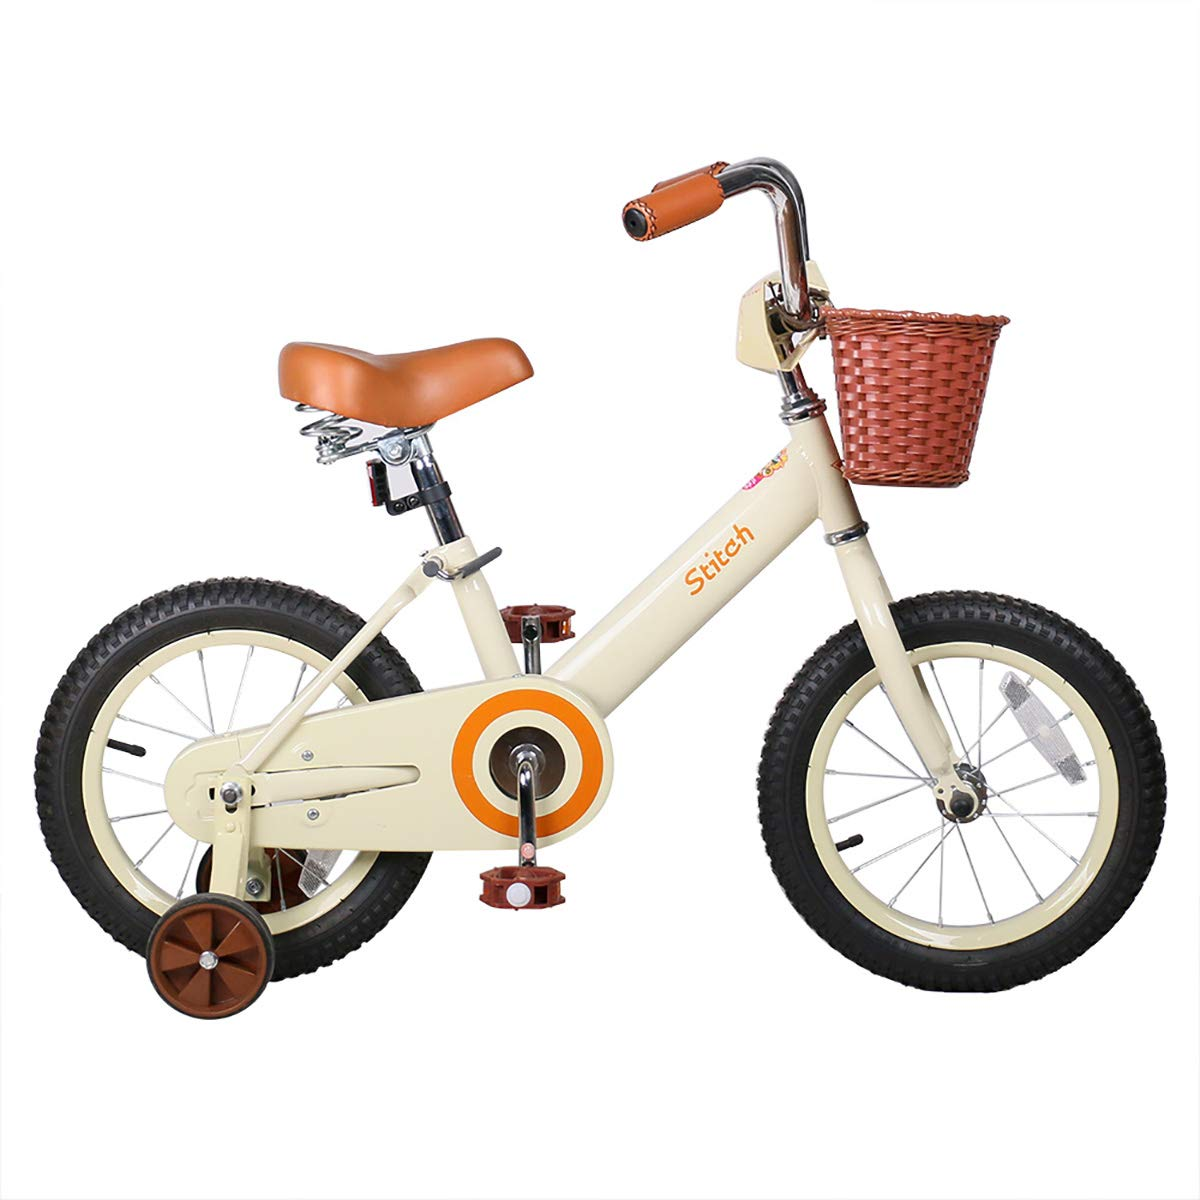 Best 16 Inch Bikes For Your Little Ones (Aged 4-6)